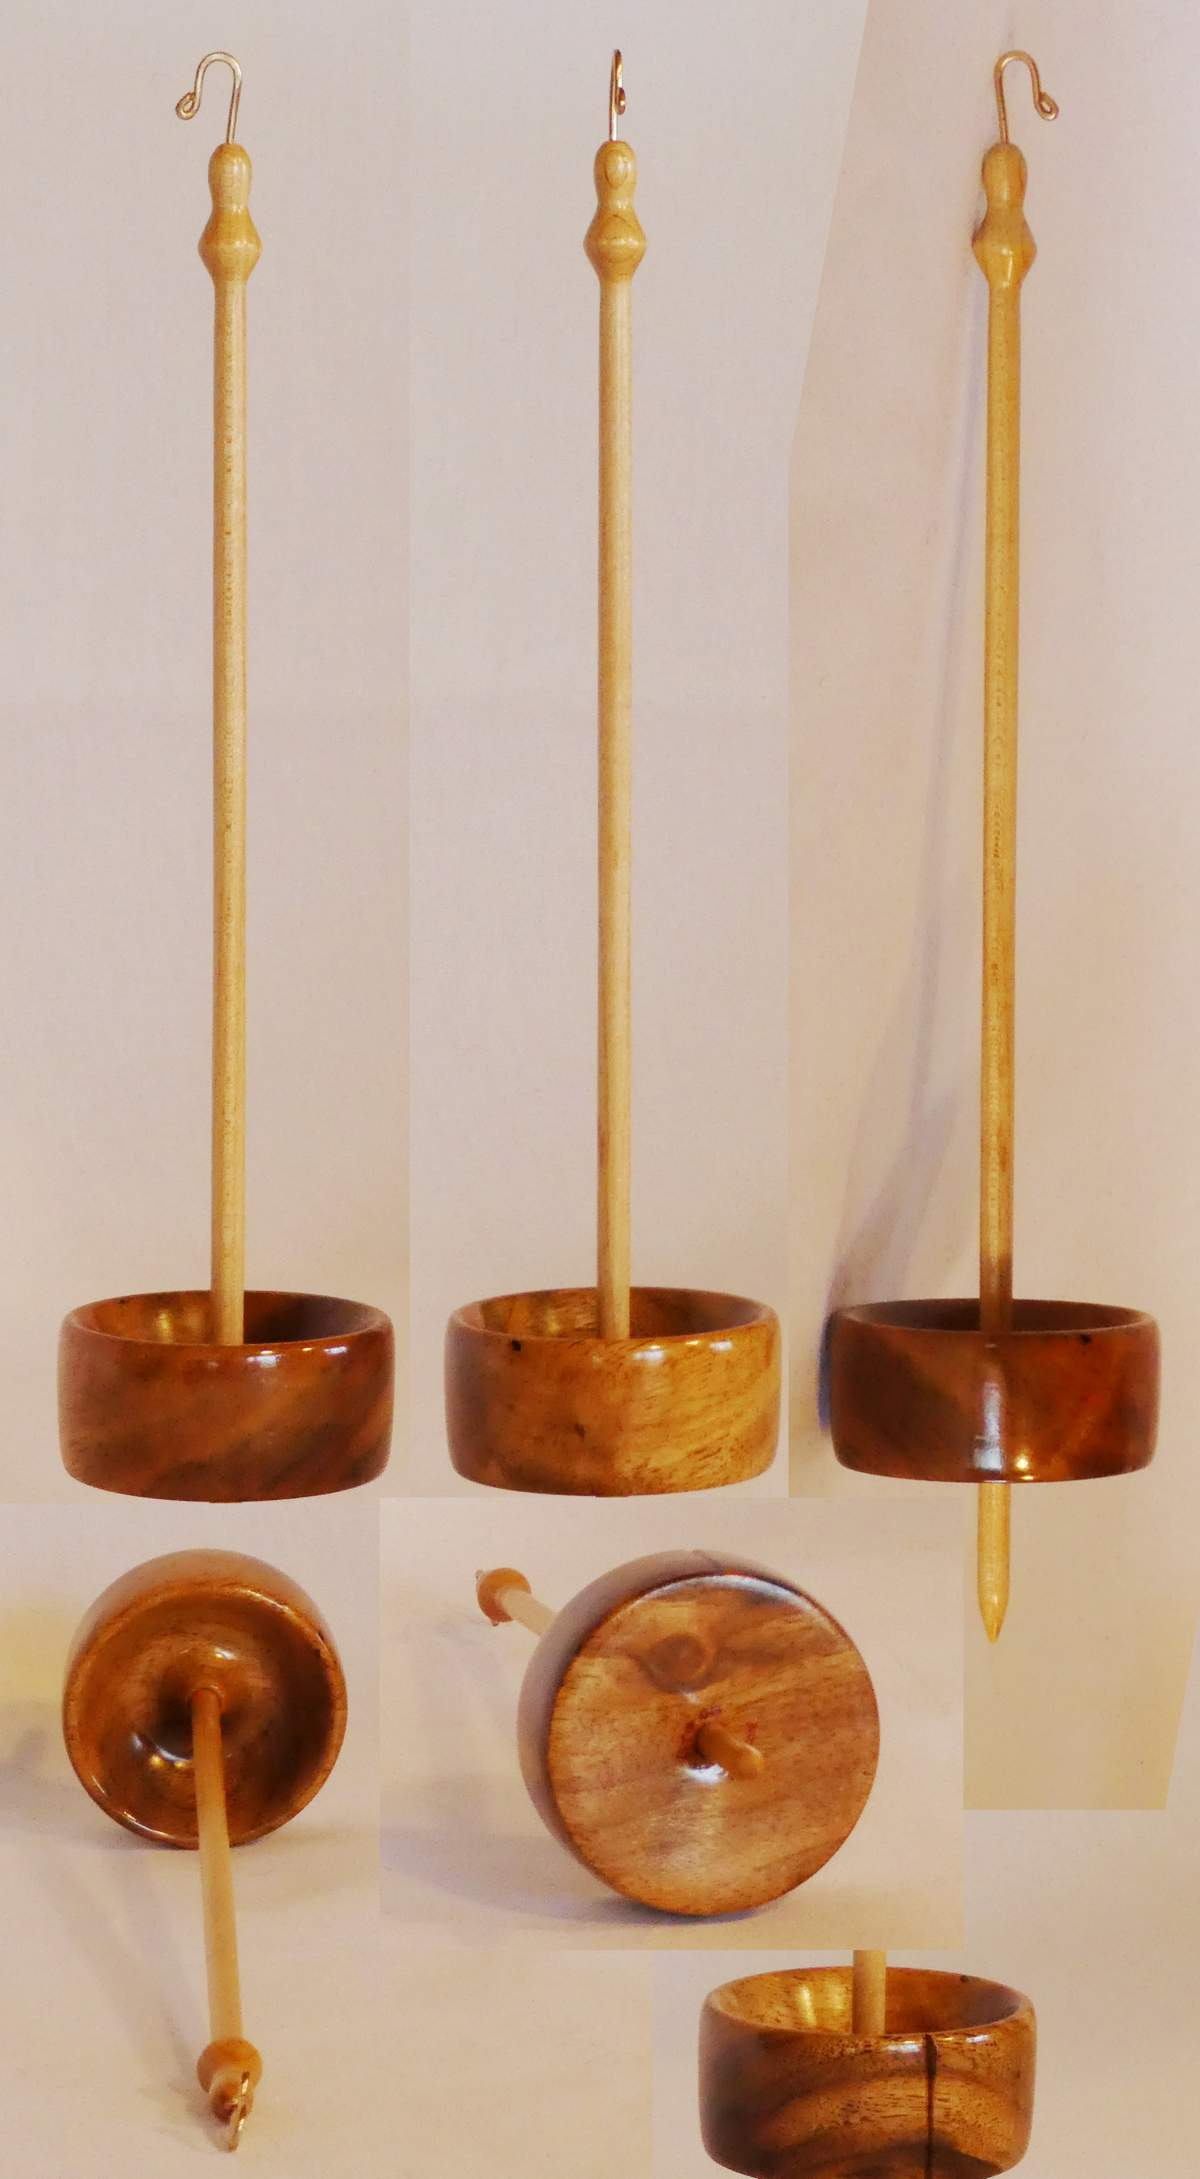 Low whorl suspended drop spindle turned and handmade by Cynthia D. Haney from Figured English Walnut and Maple.